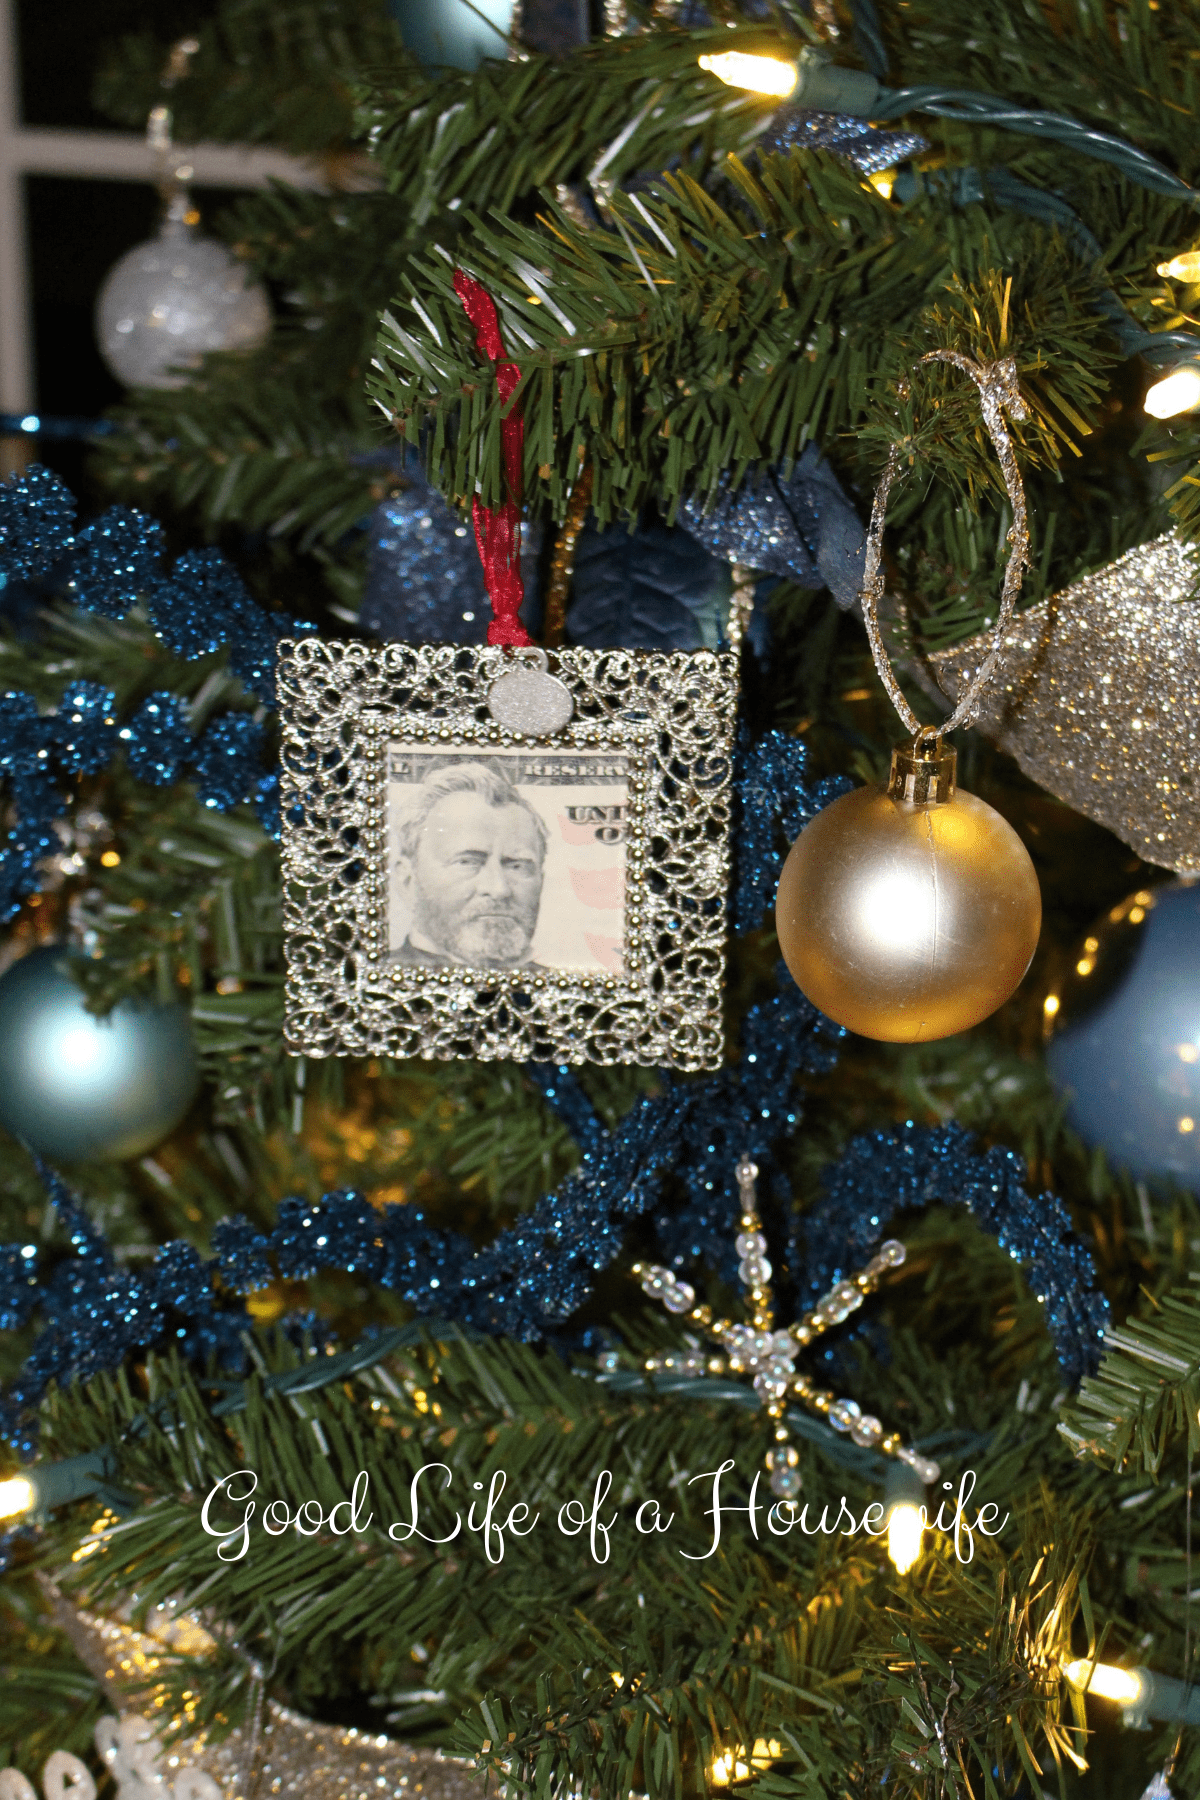 Jingle Bills - Cash Christmas Gift Idea - Good Life of a Housewife